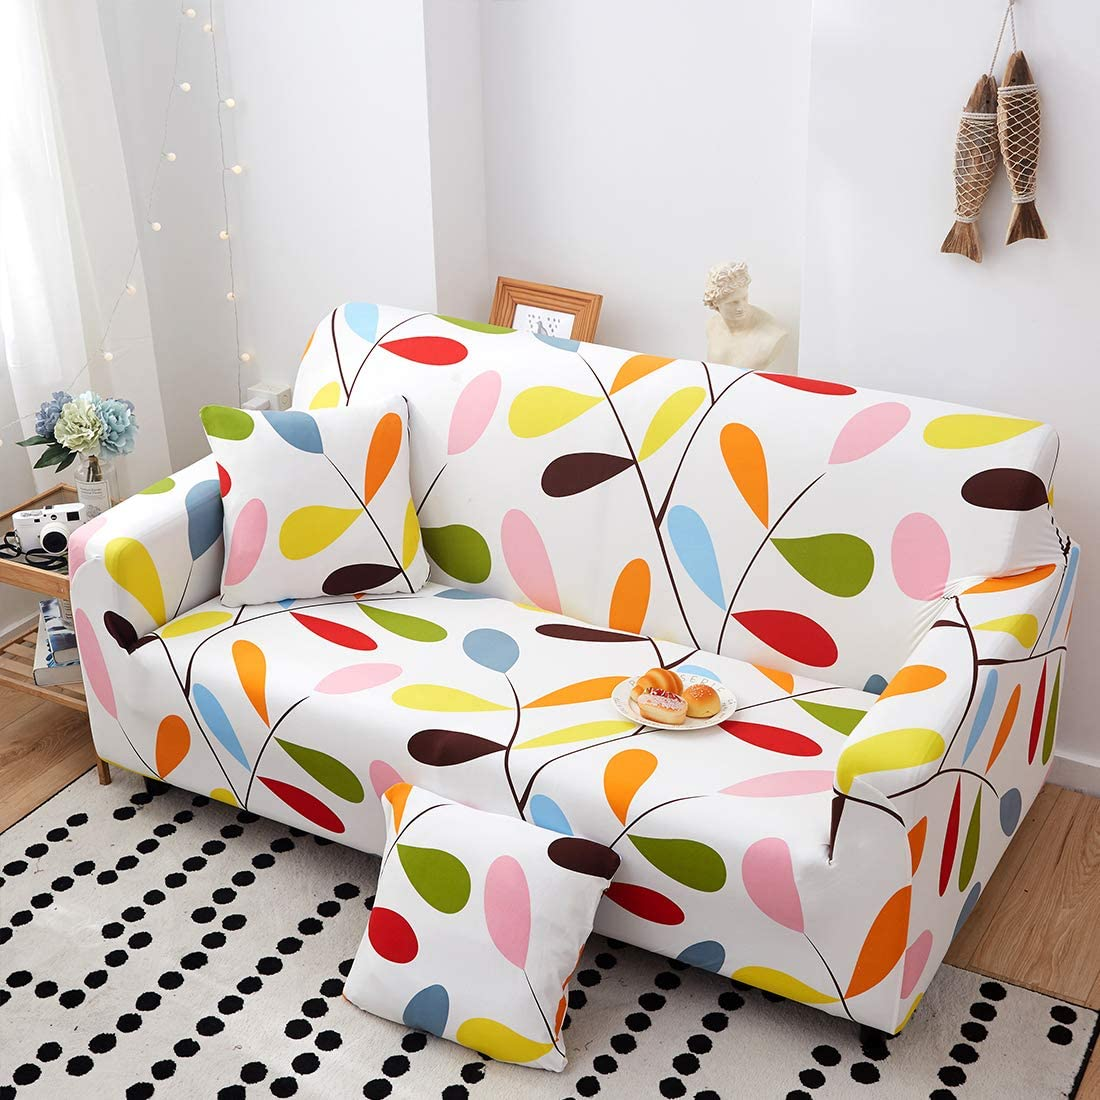 Sofa FORCHEER Stretch Sofa Cover Printed Pattern 4-Seat Spandex Couch Cover slipcover for 4 Cushion Couch 1 Piece Furniture Protector for Living Room Pets